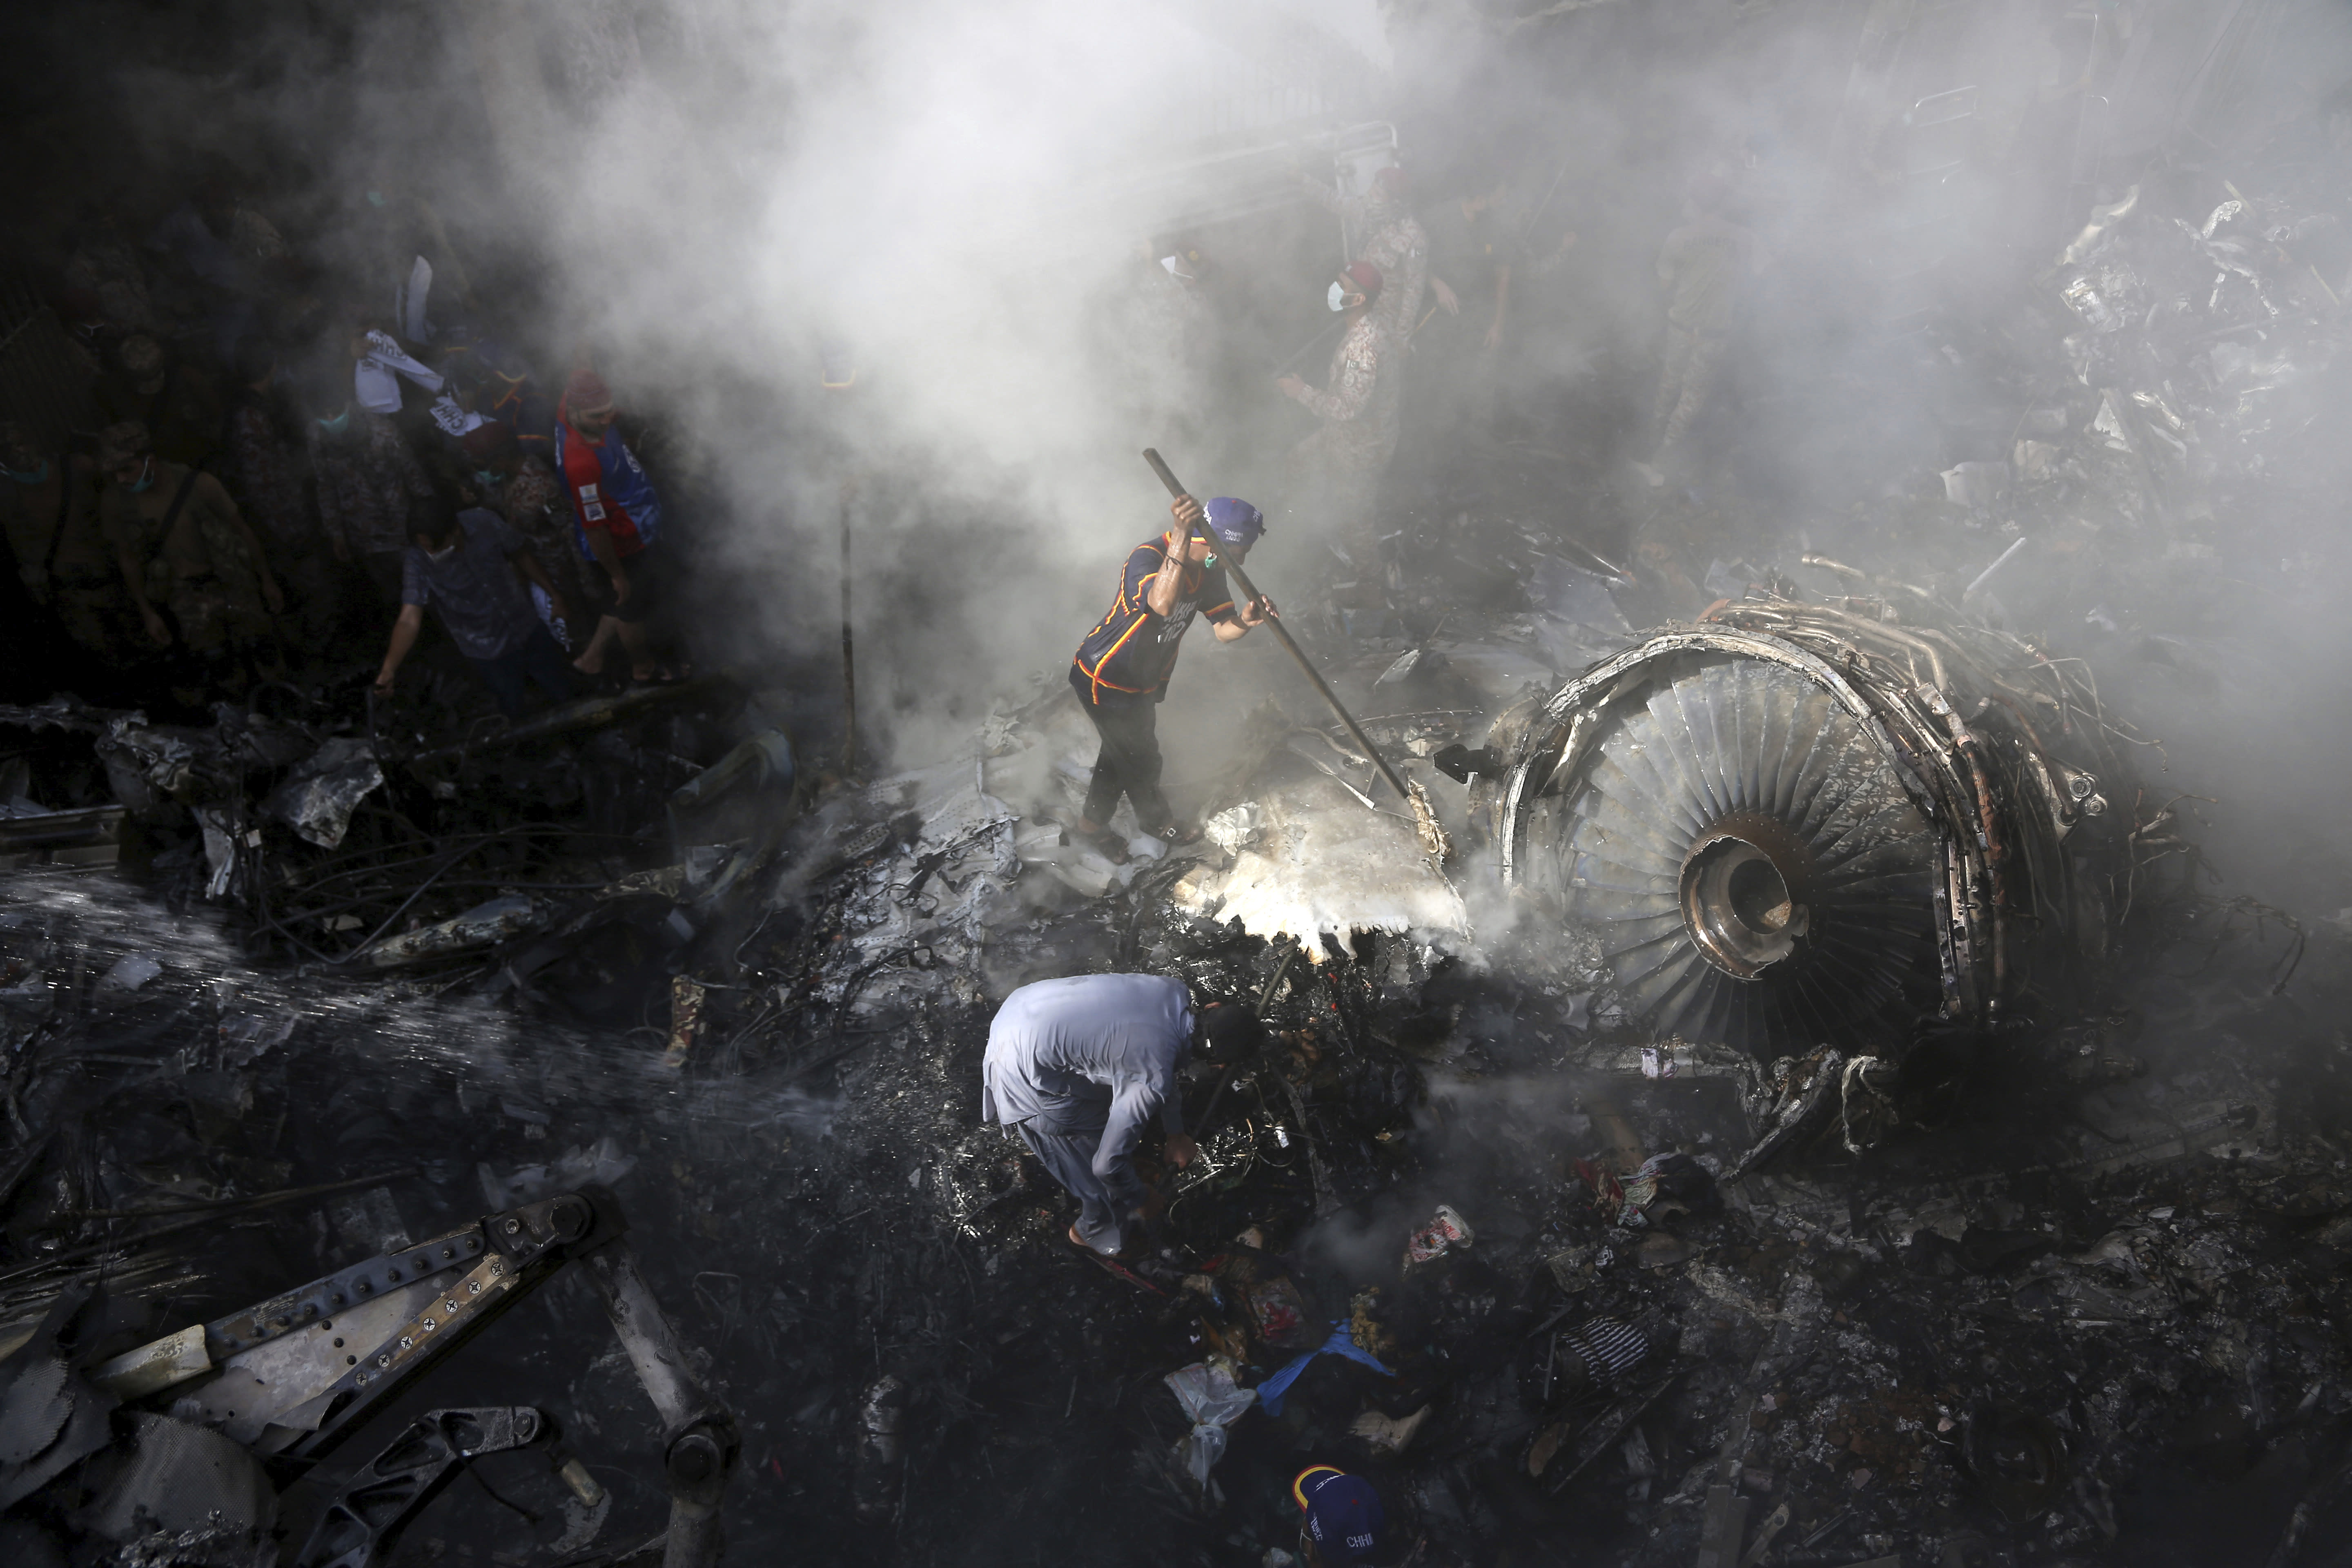 FILE - In this May 22, 2020 file photo, volunteers look for survivors of a Pakistan International Airlines plane that crashed in a residential area of Karachi, Pakistan. The spokesman of Pakistan's national carrier said Wednesday, July 8, 2020, that the airline is firing 28 pilots found to have tainted licenses, the latest chapter in a scandal that emerged in the wake of the Airbus A320 crash in Karachi in May. An inquiry into the crash, which killed 97 people on board, resulted in the stunning revelation that 260 of 860 pilots in Pakistan had cheated on their pilots exams, but were still given licences by the Civil Aviation Authority. (AP Photo/Fareed Khan, File)